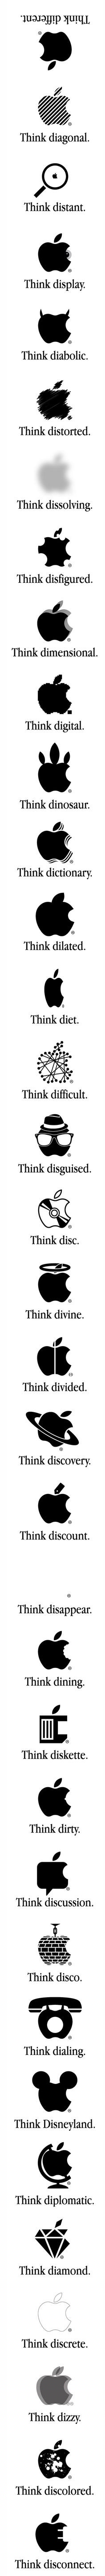 think and think again. think Apple.